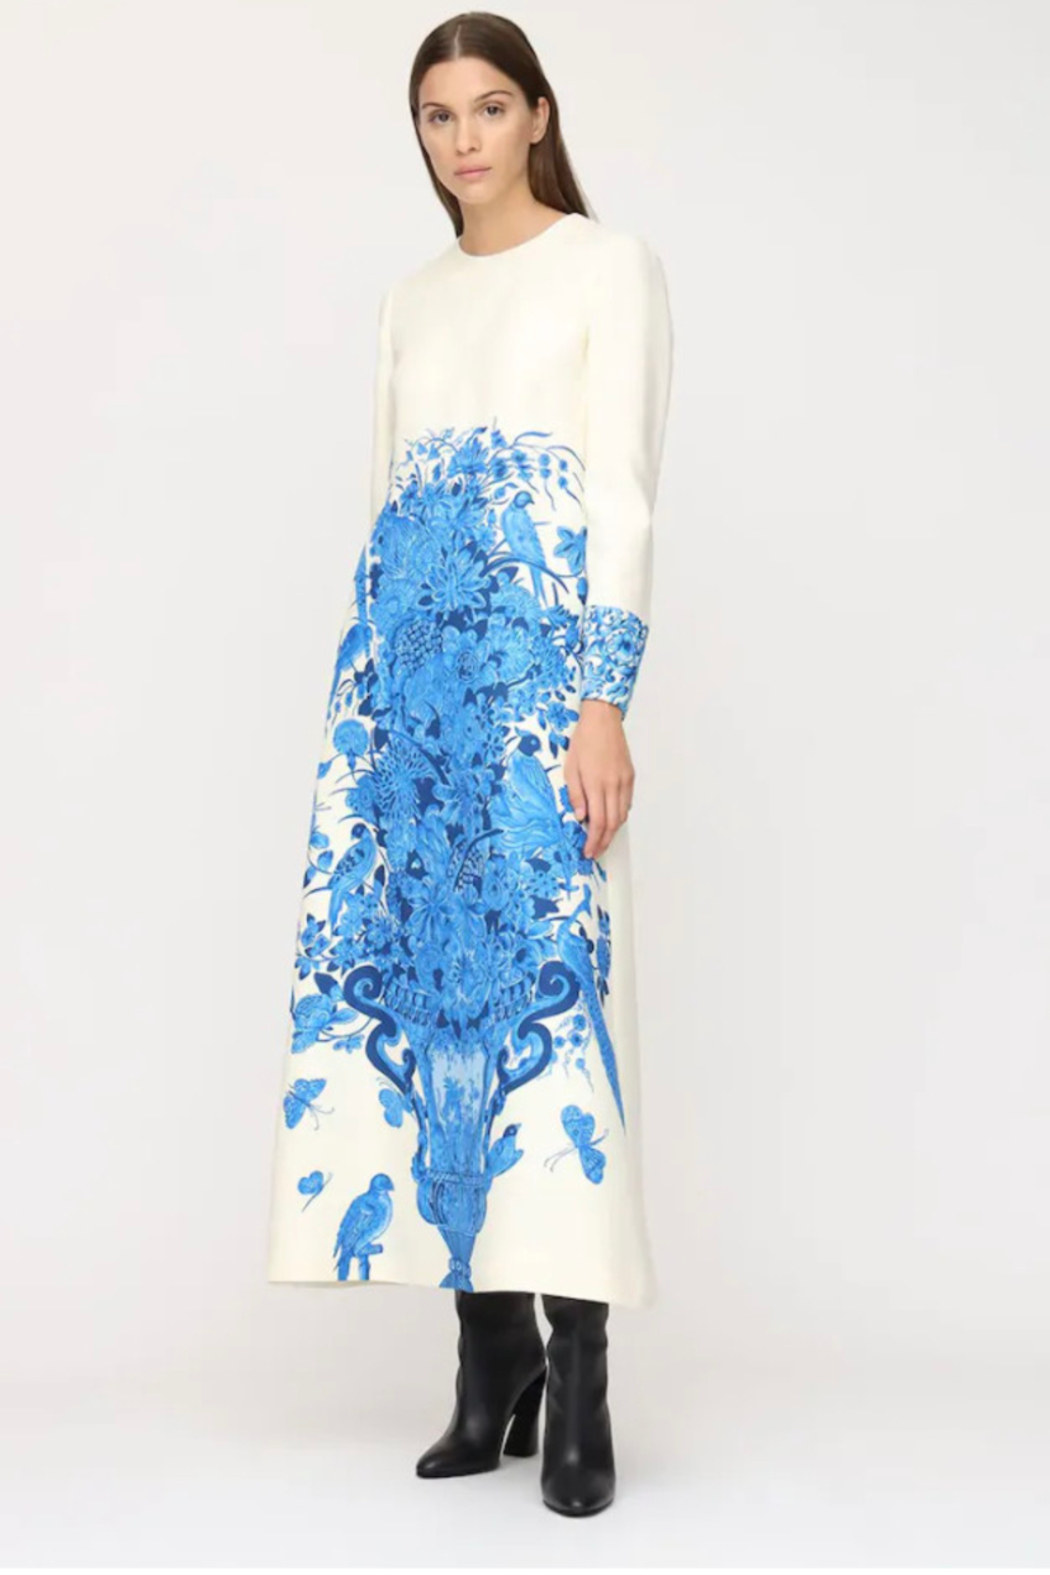 Valentino LONG SLEEVE CREPE COUTURE FLORAL MAXI DRESS - Main Image